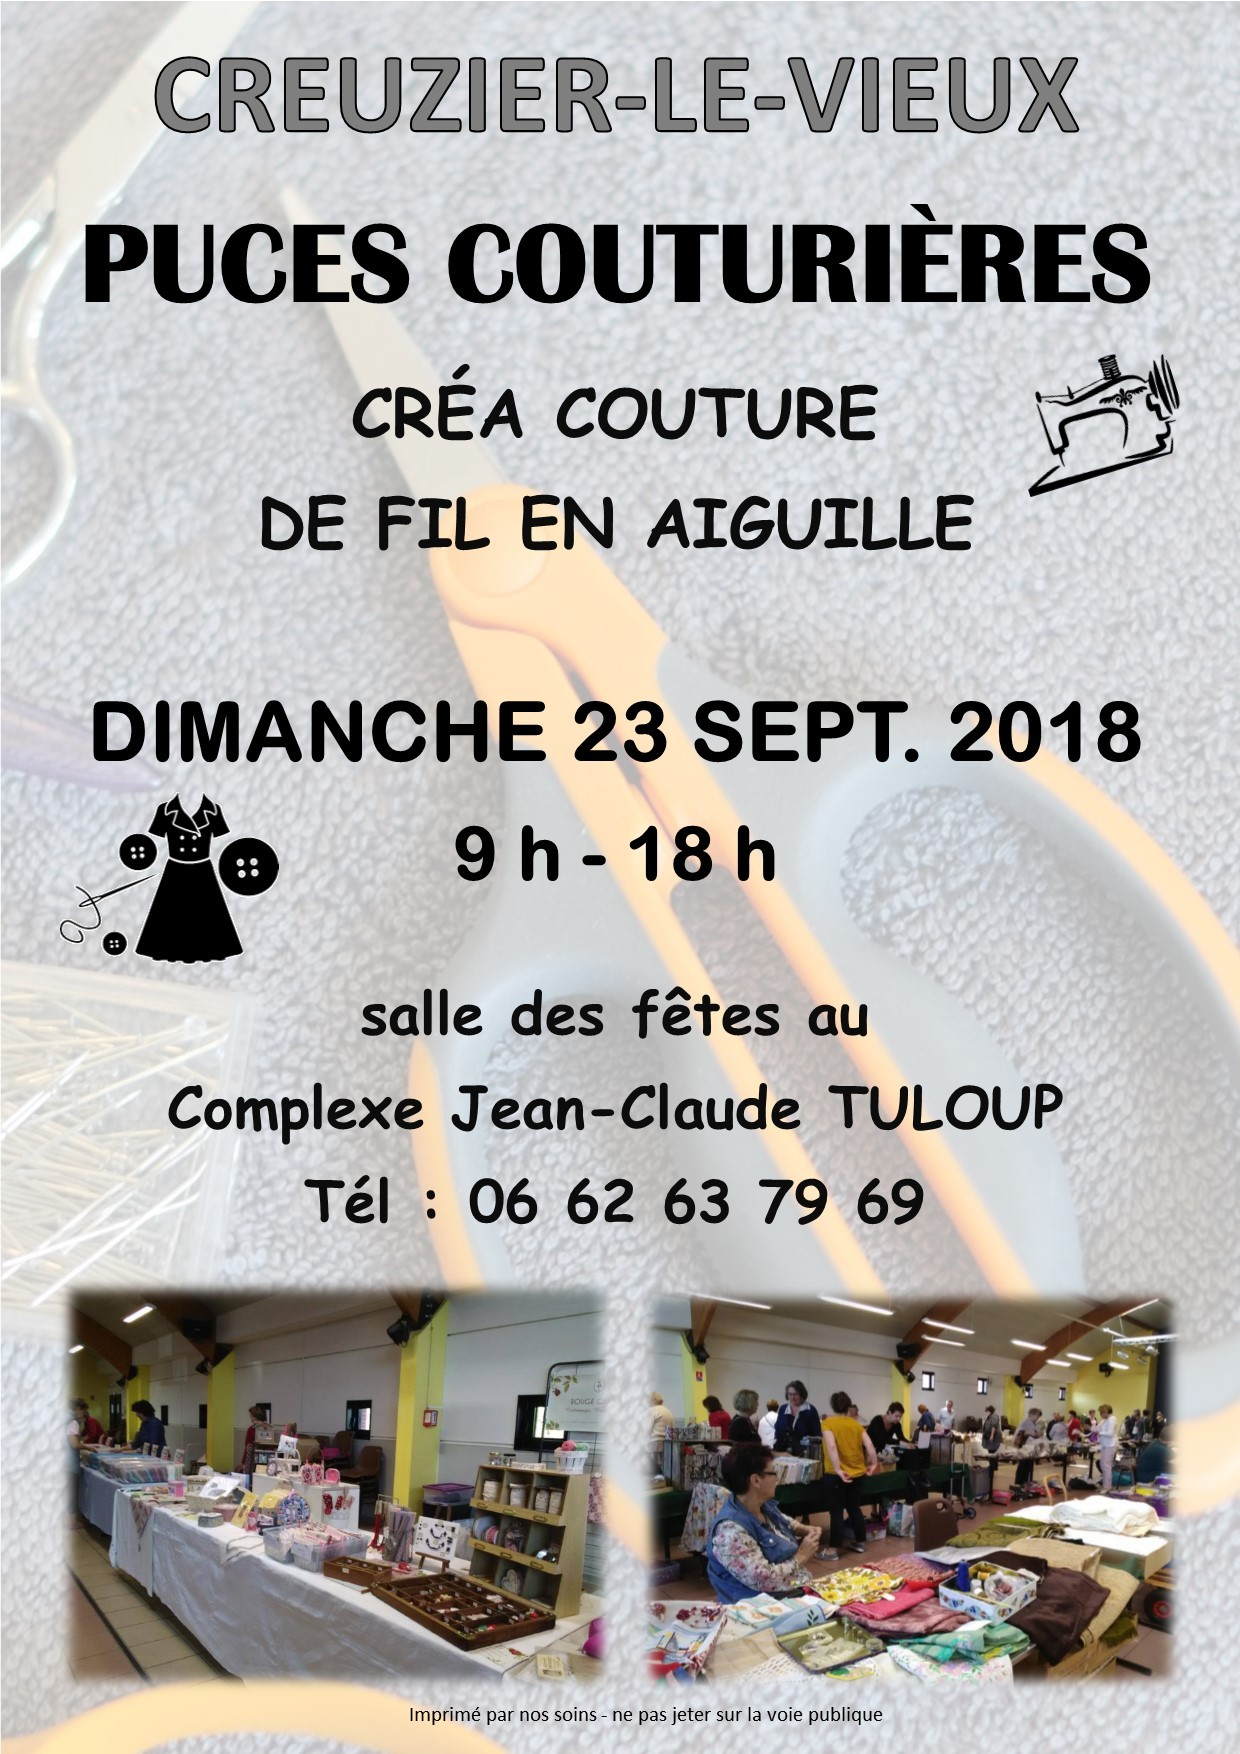 PUCES COUTURIERES - SEPT